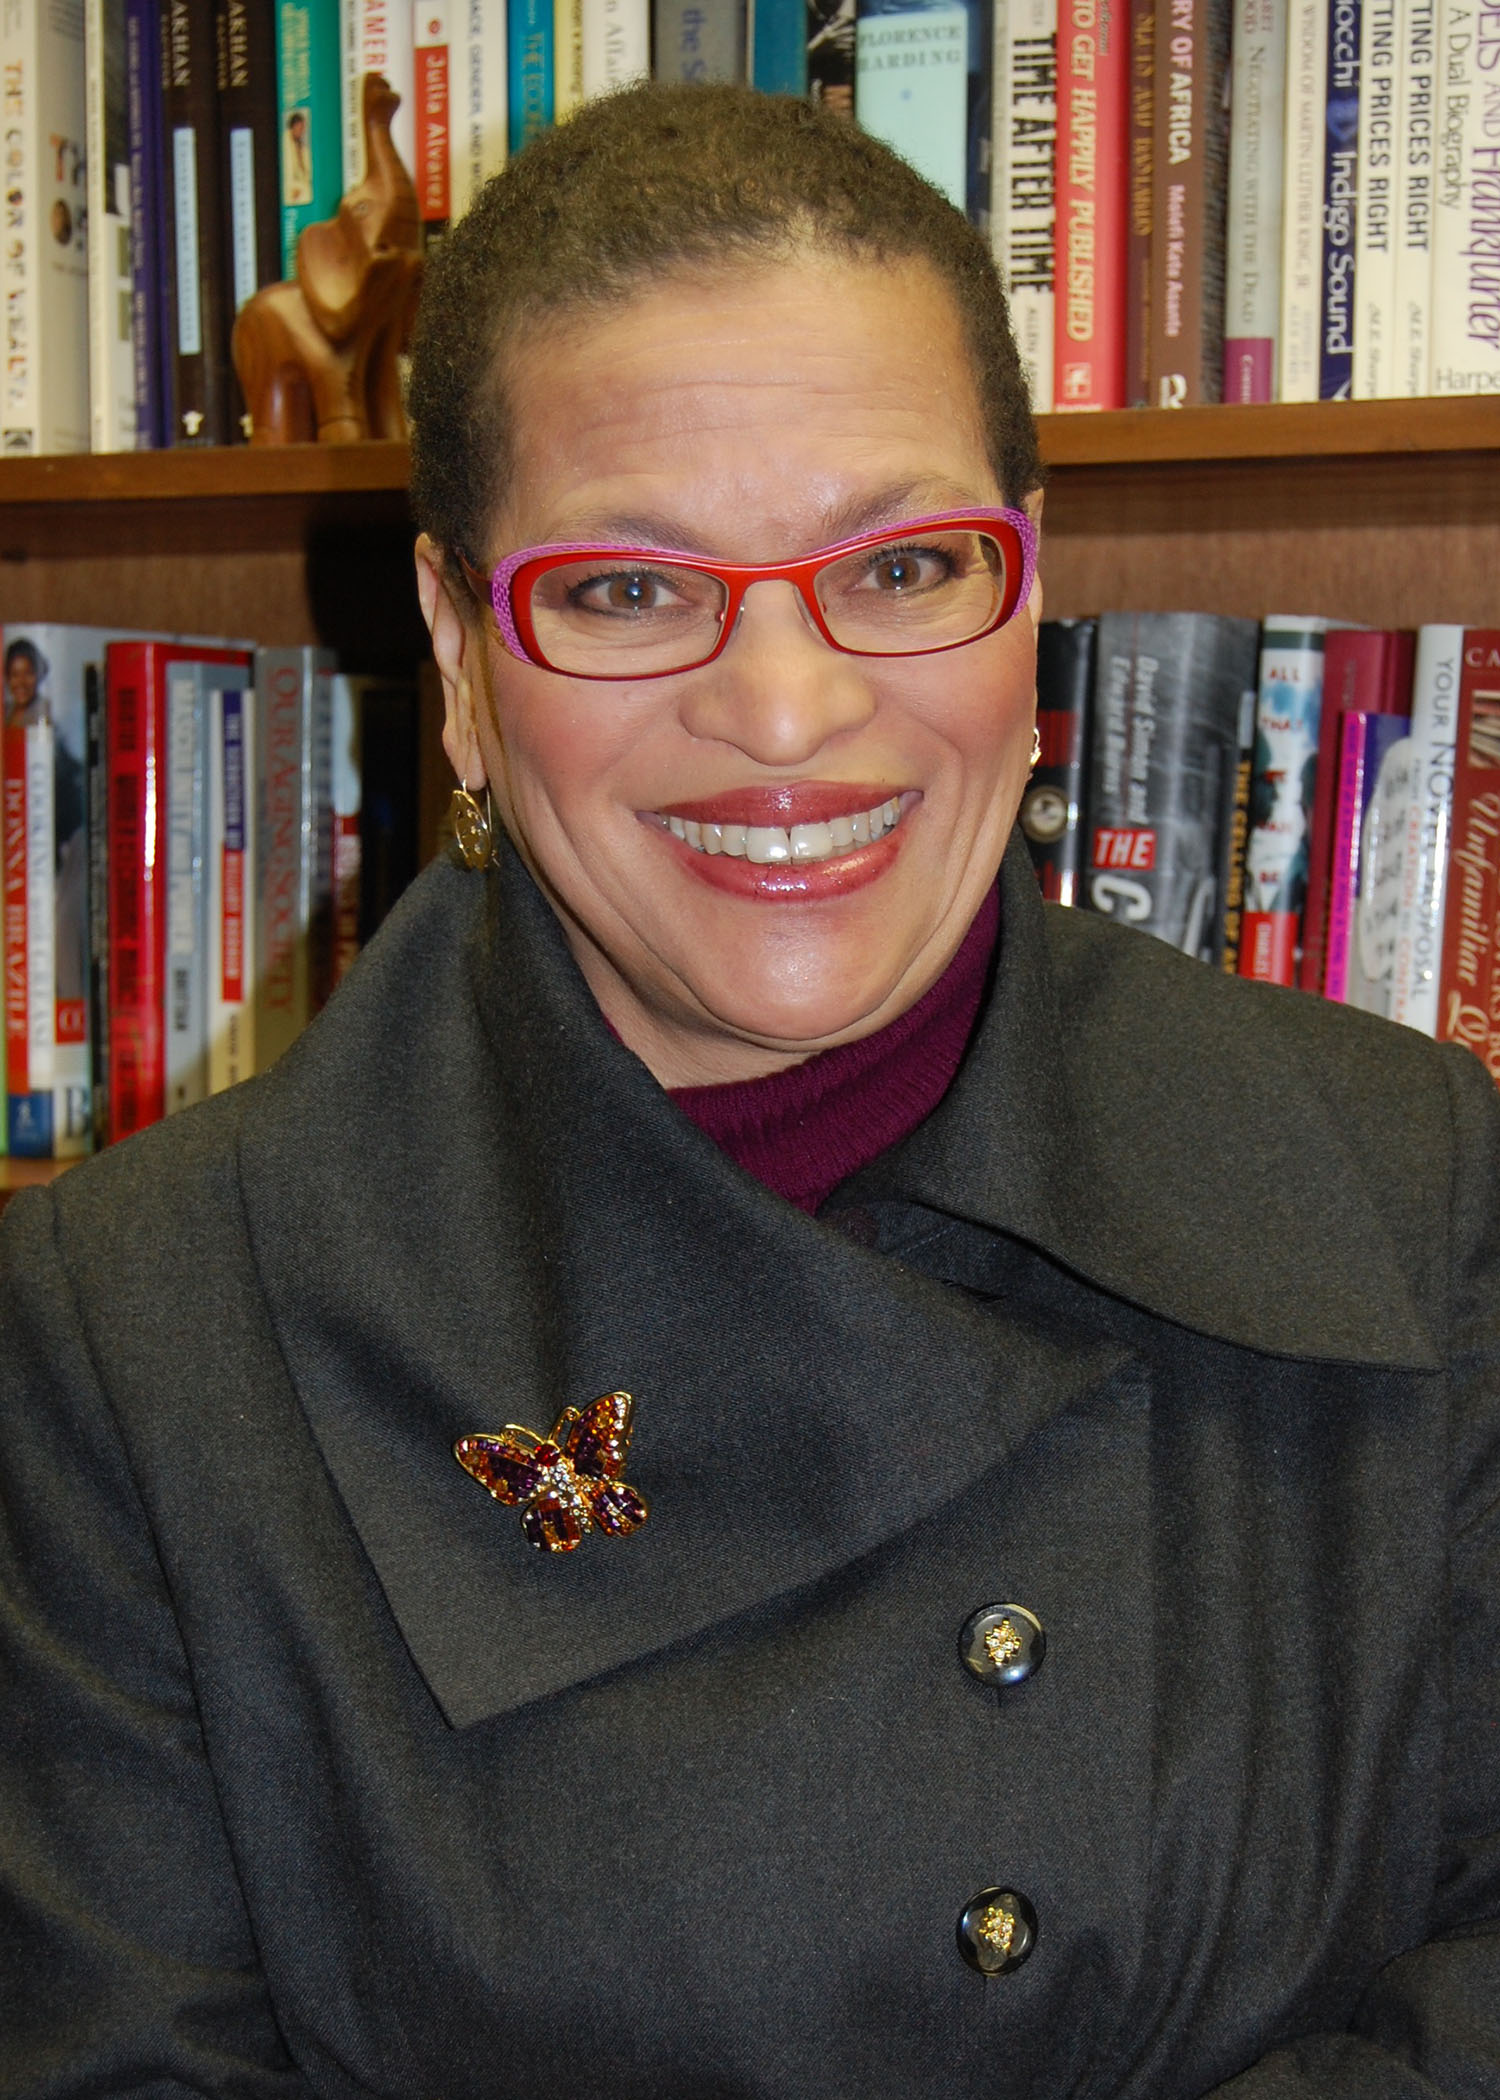 Julianne Malveaux says that we need more Black folks like Ron Daniels to exhibit the amazing tenacity that has kept him on focus and on fire for African American people.